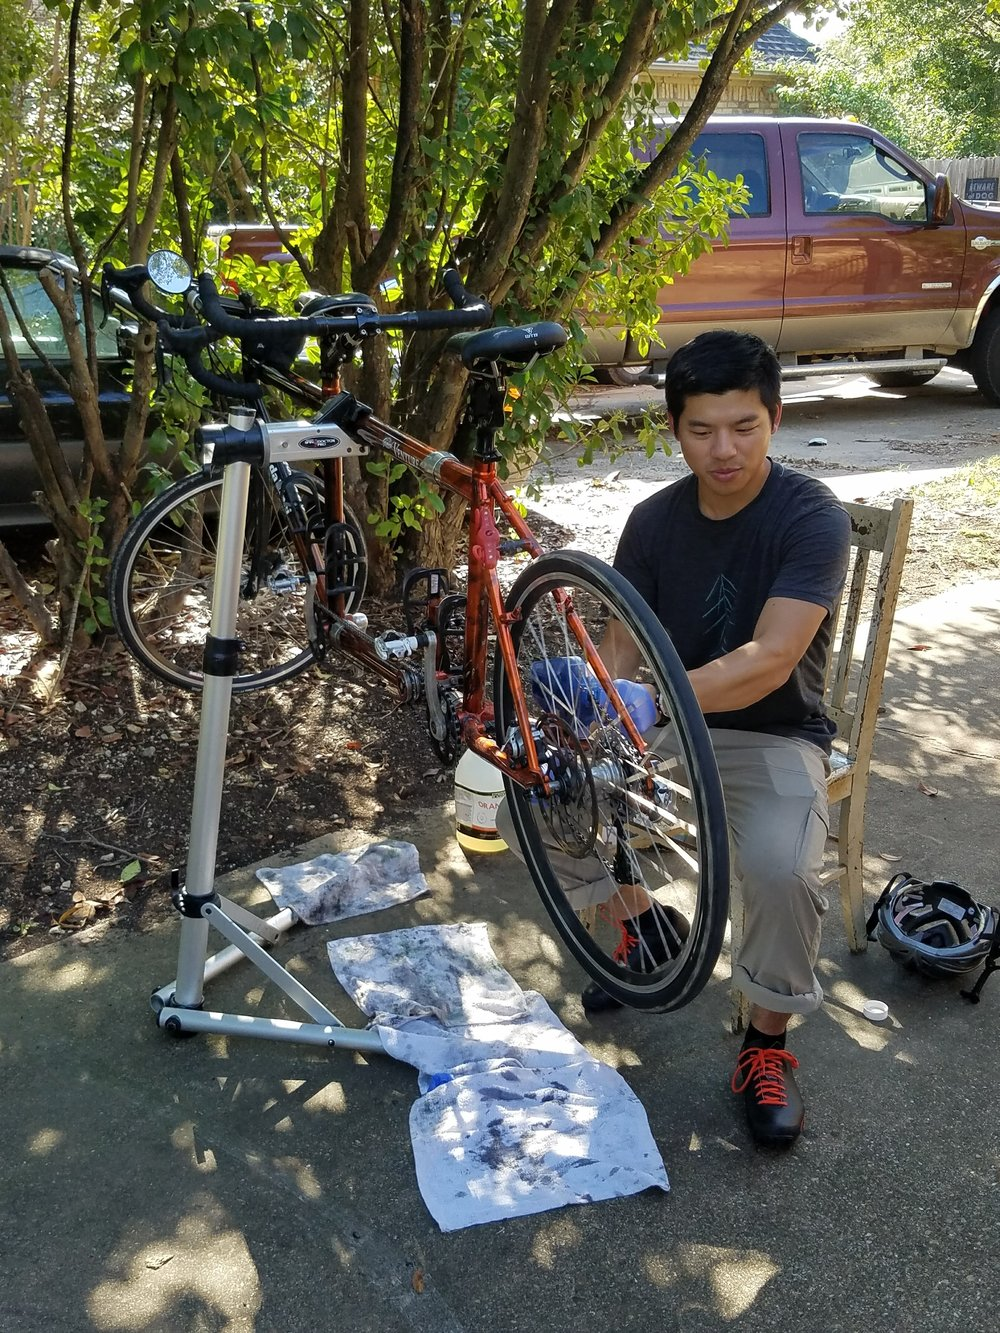 bike cleaning and re-sizing of the tandem